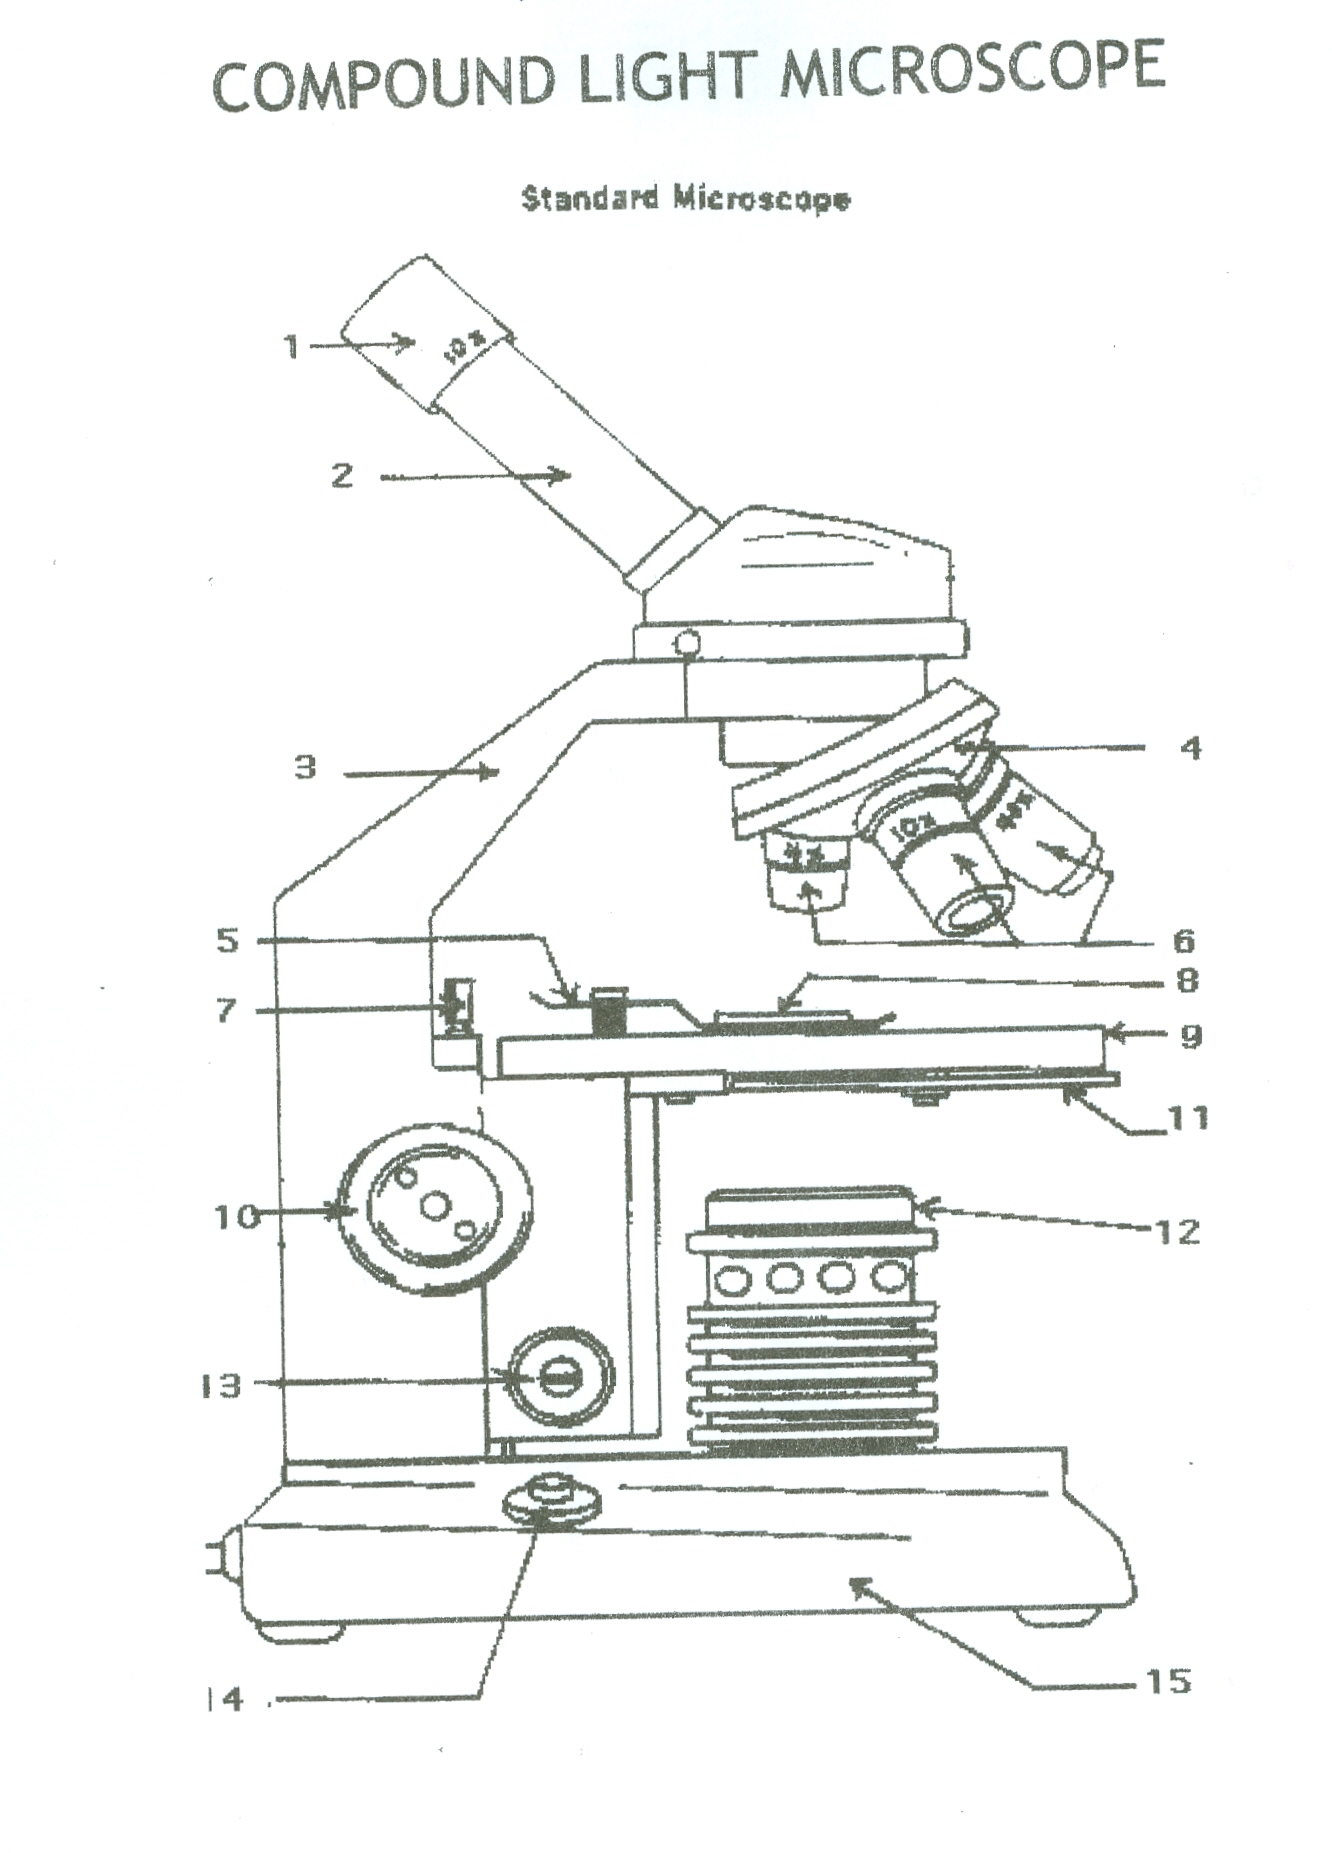 compound microscope diagram and functions 04 chevy silverado bose radio wiring 7 red team